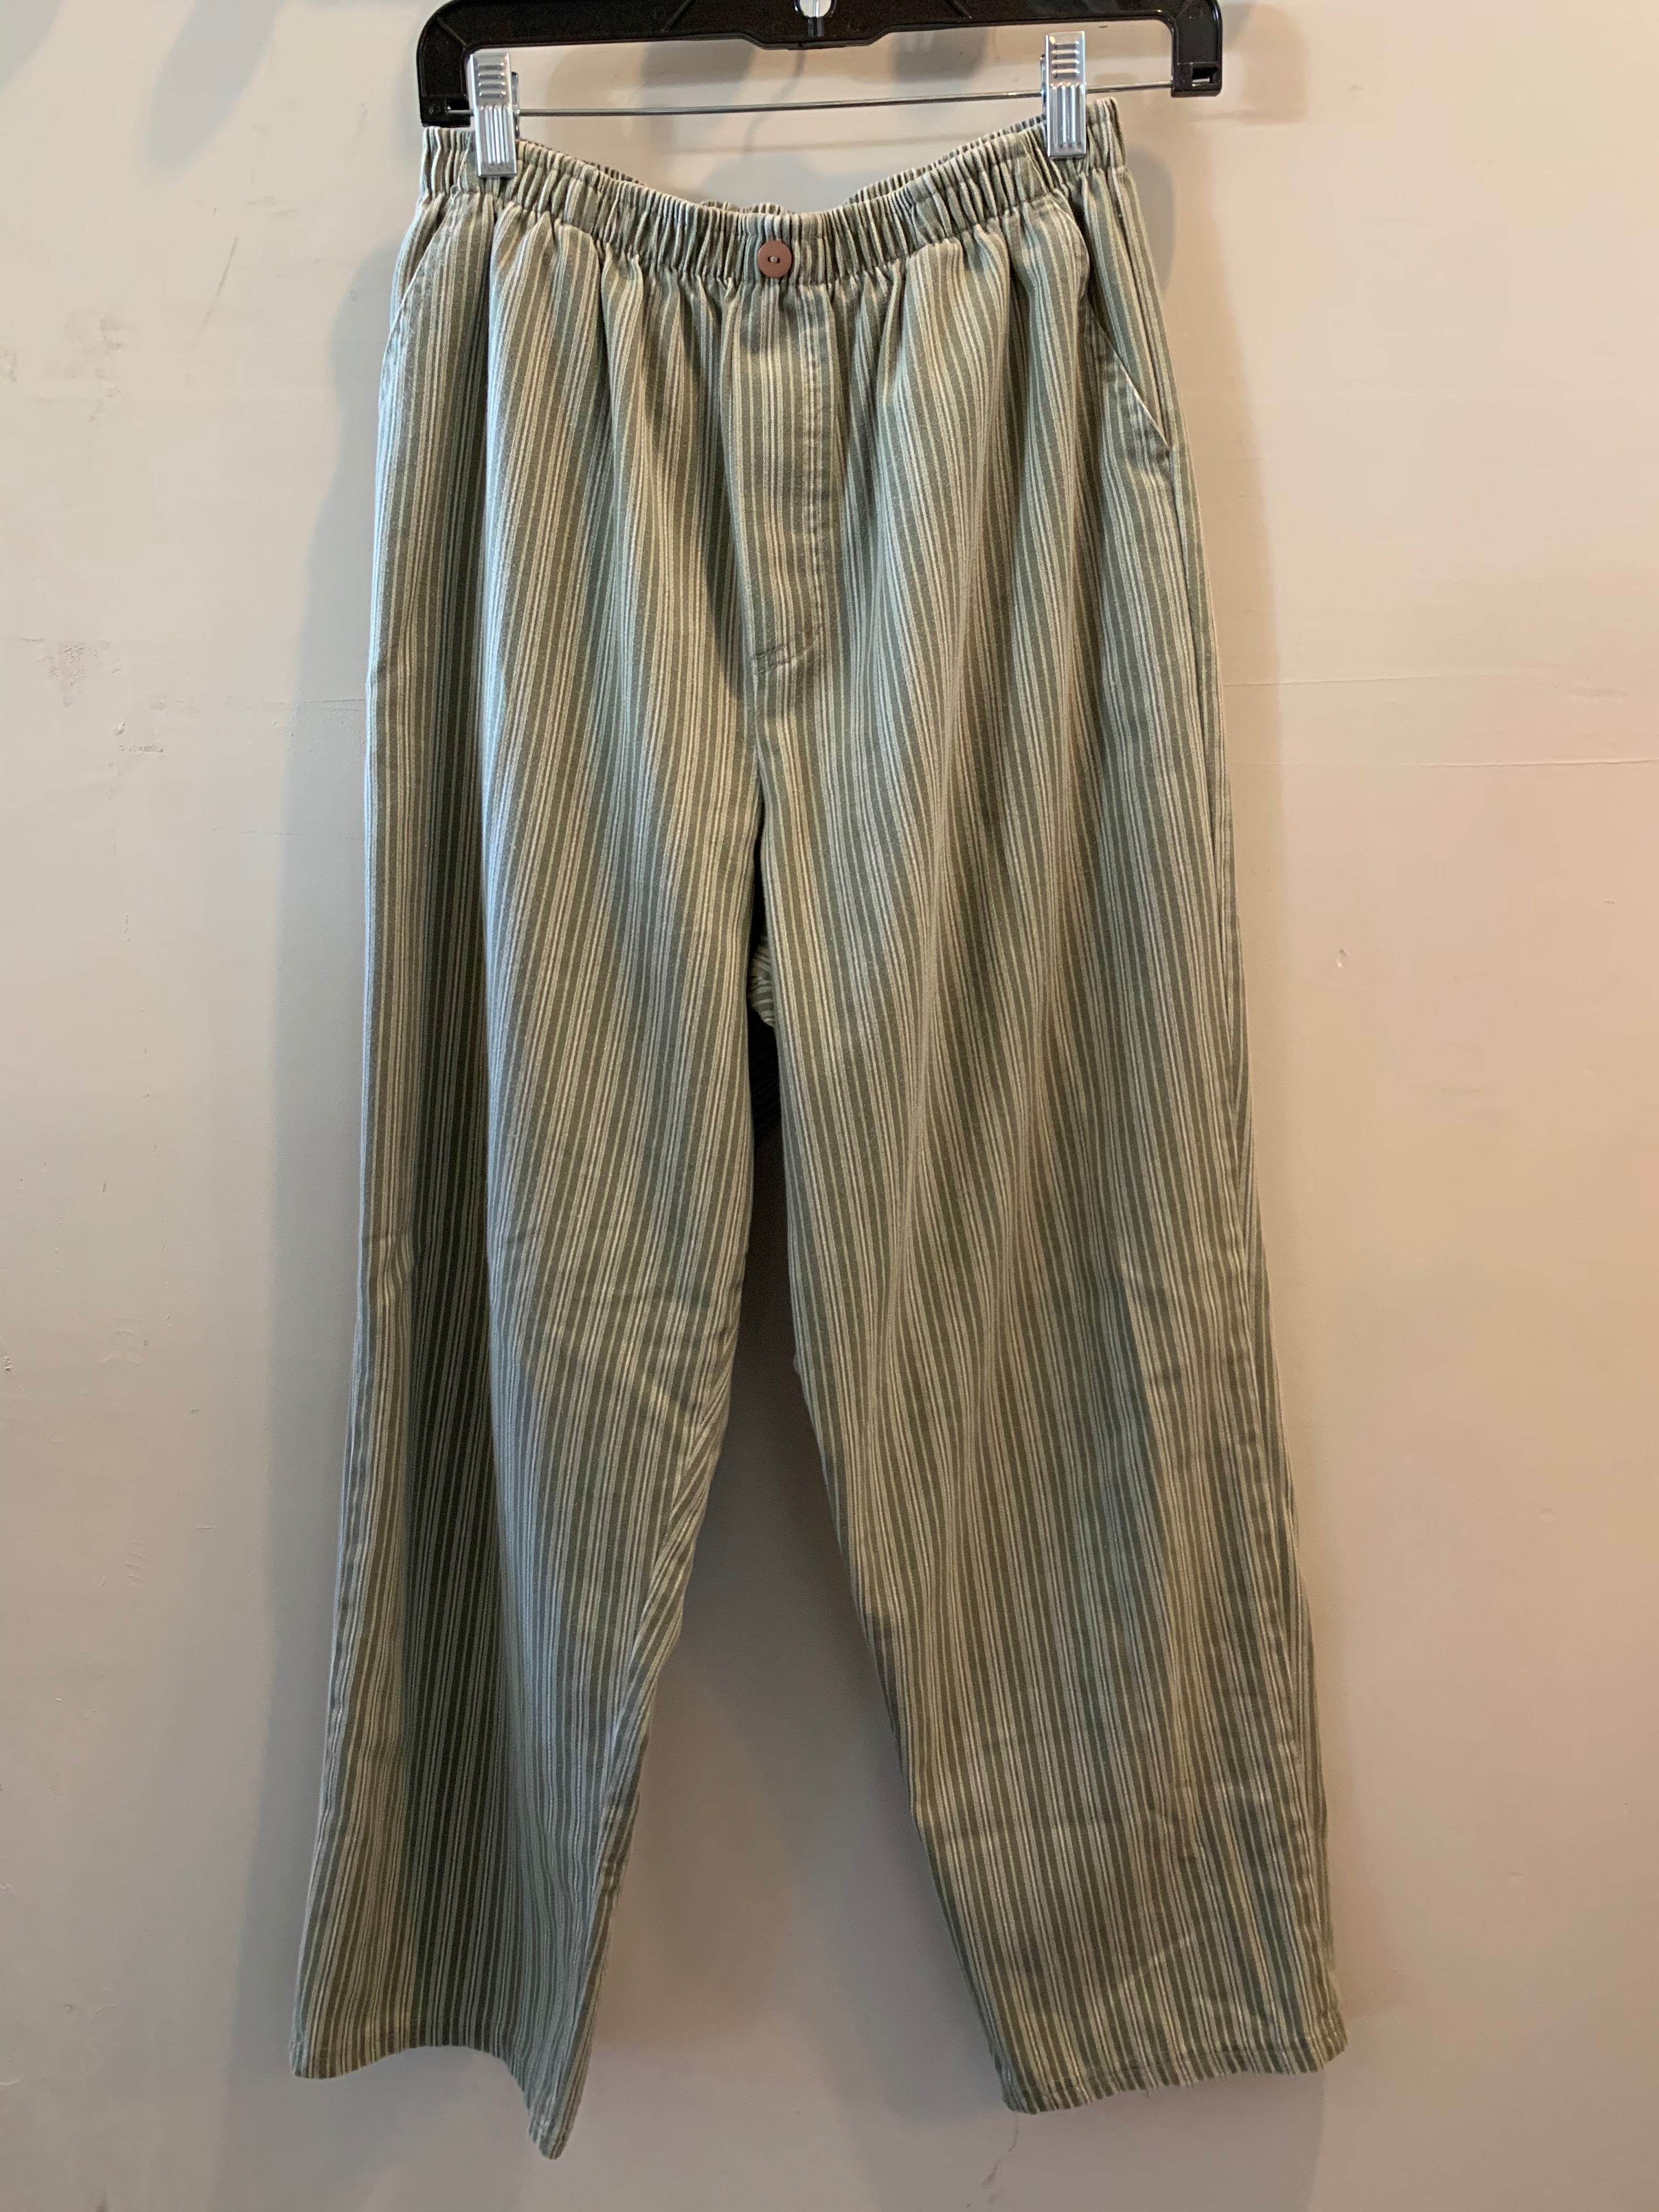 Vintage Green and White Striped Pants